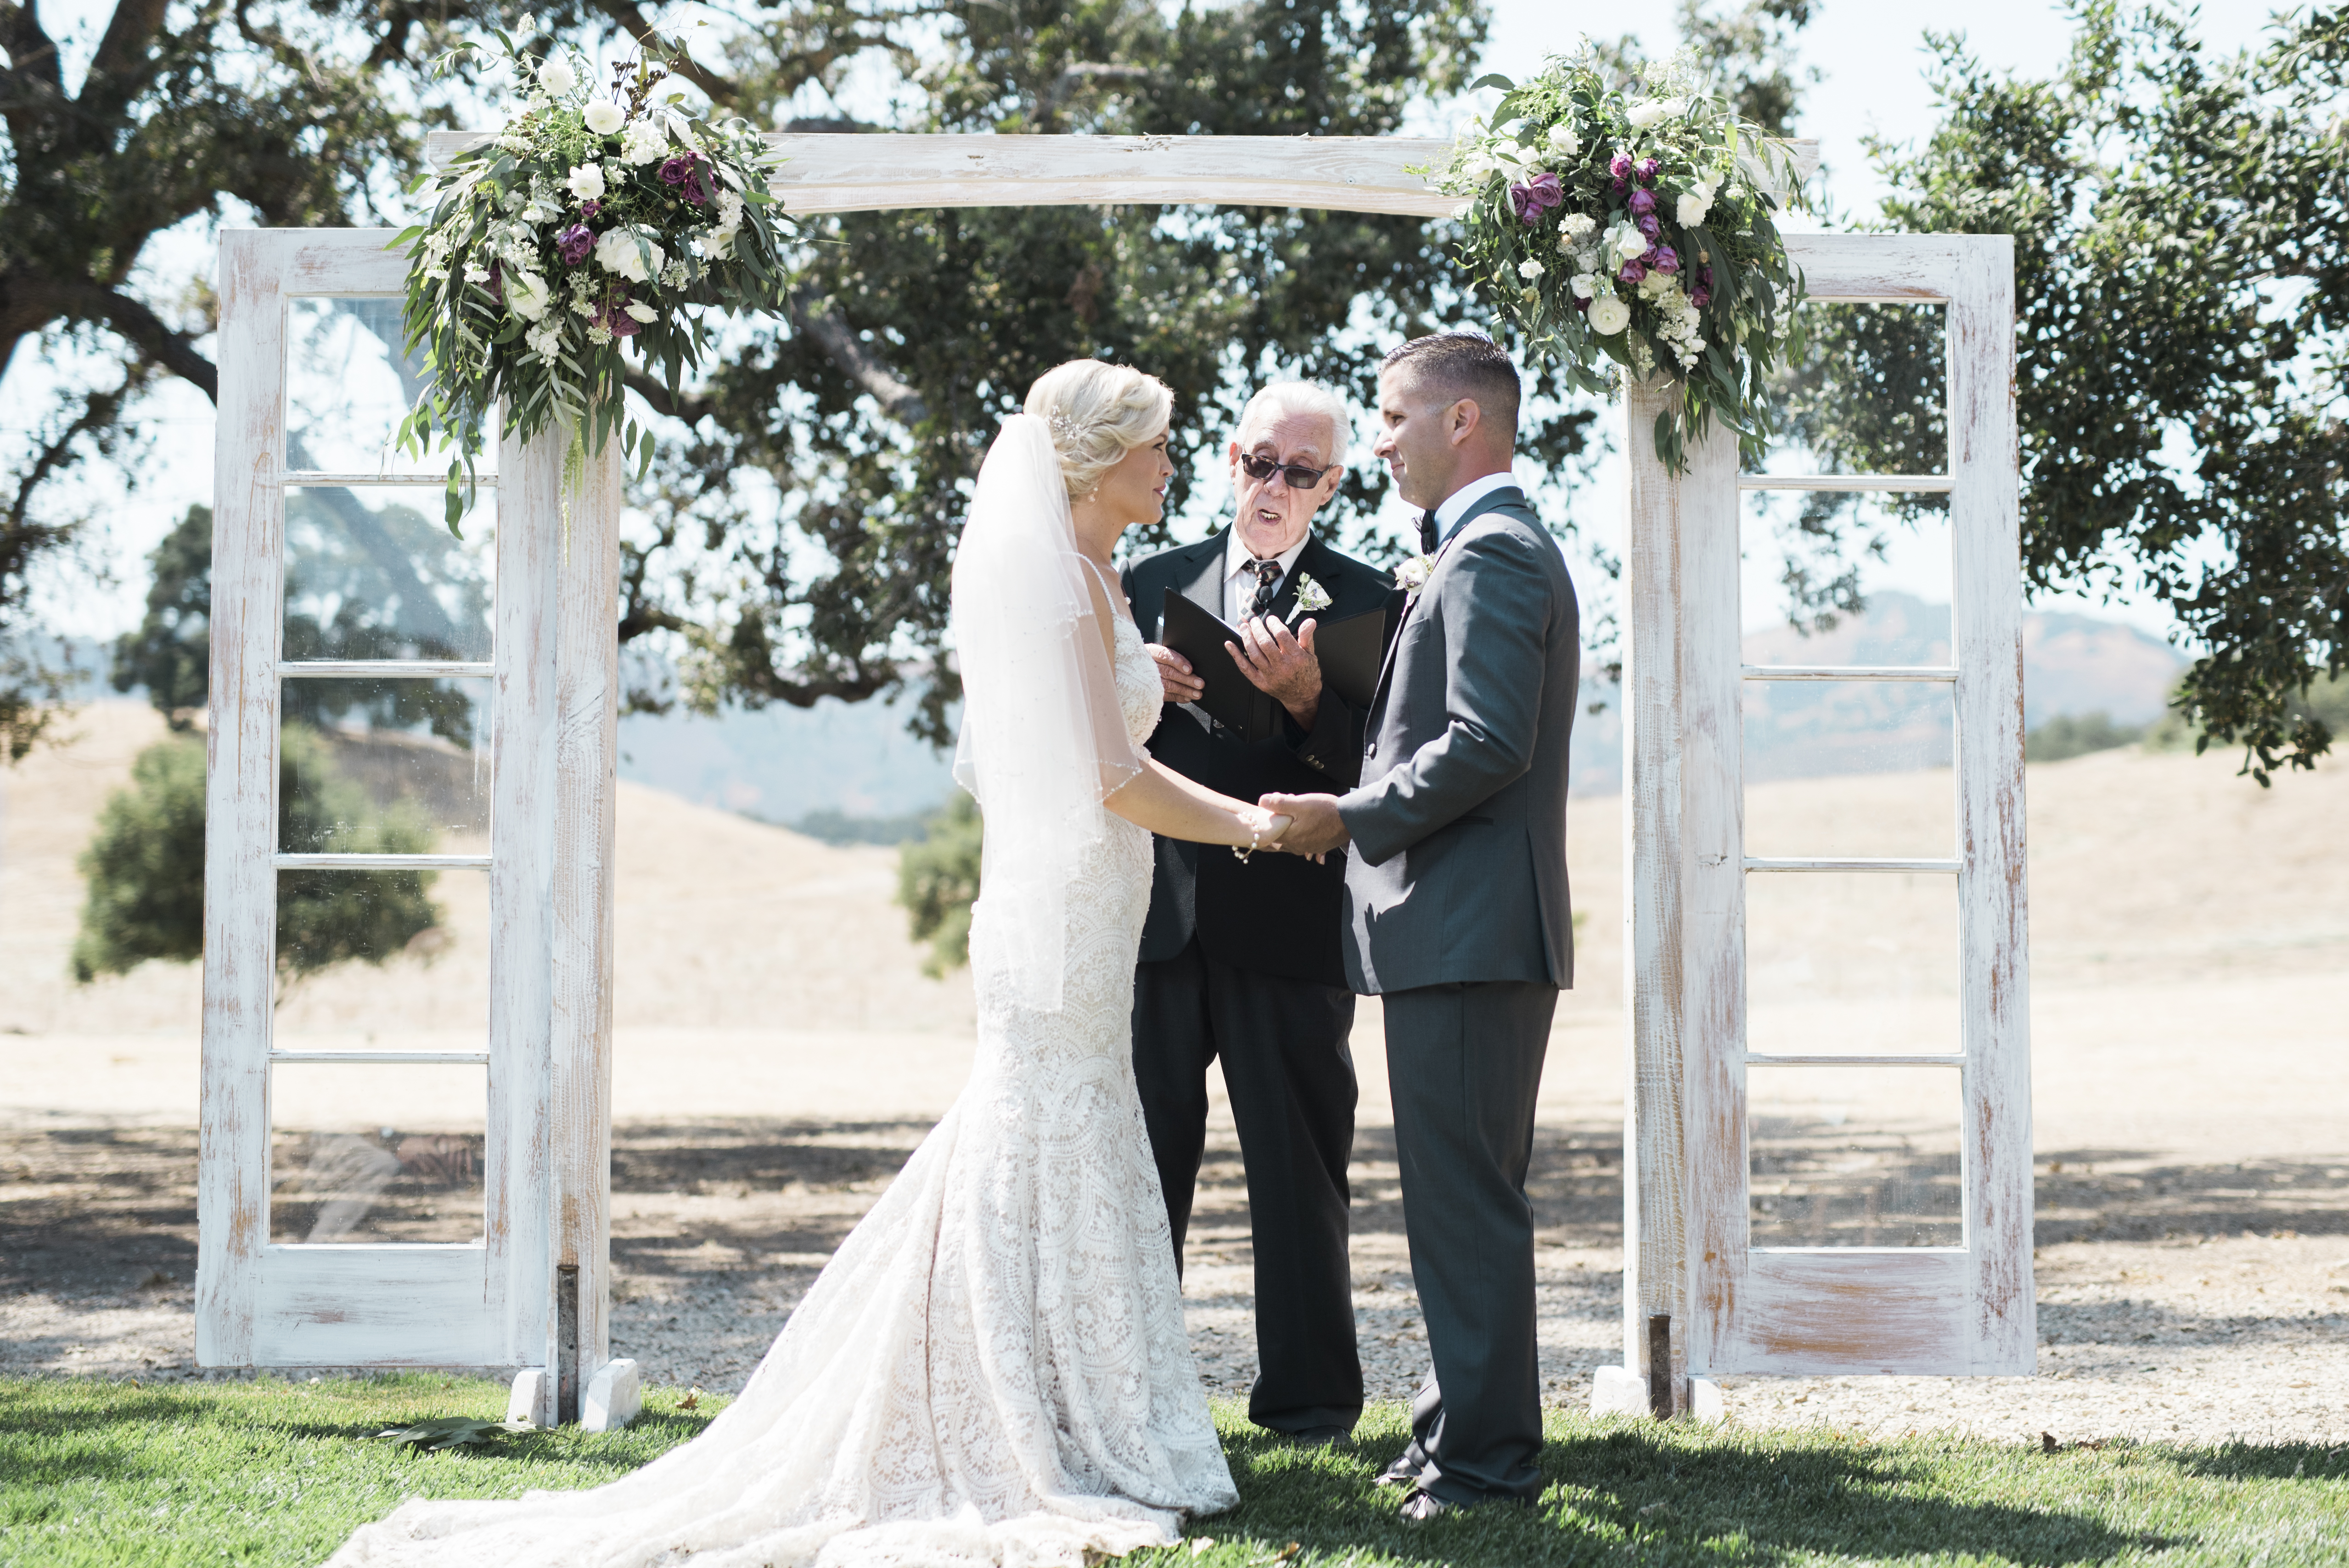 Loomis Ranch-Shannon McMillen Photography-47